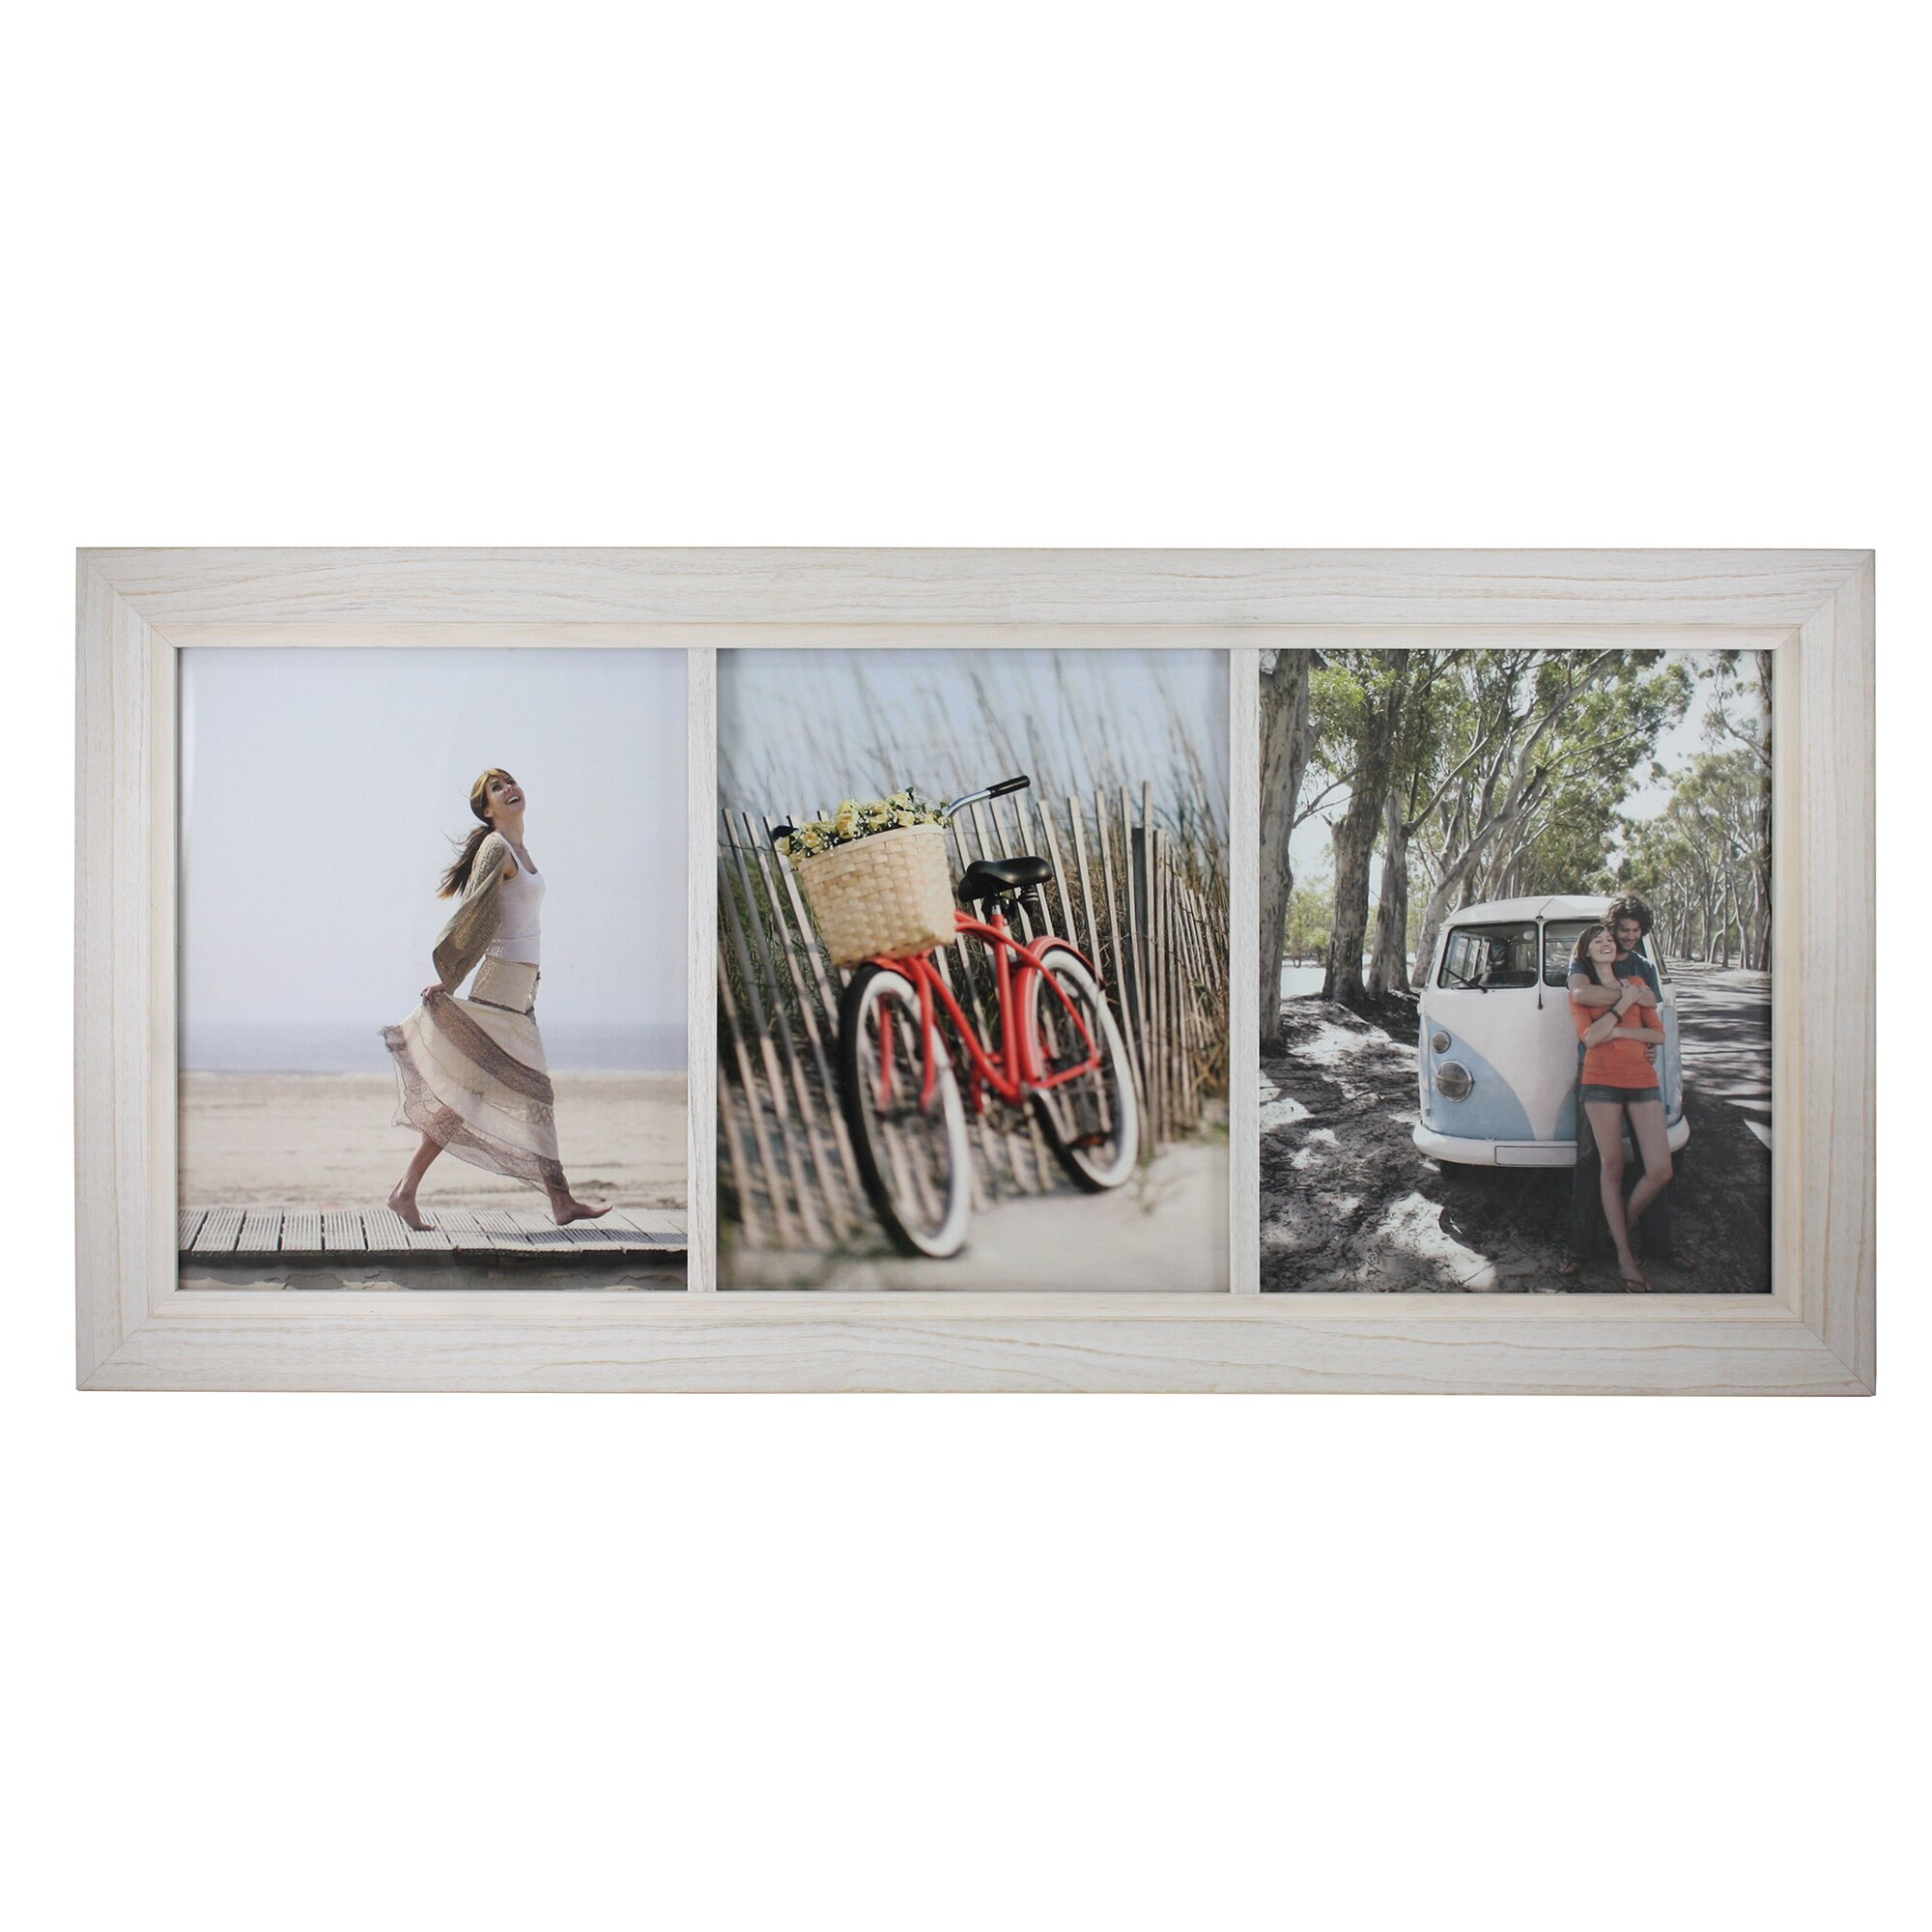 Fetco Home Decor Blanford Classic Picture Frame & Reviews